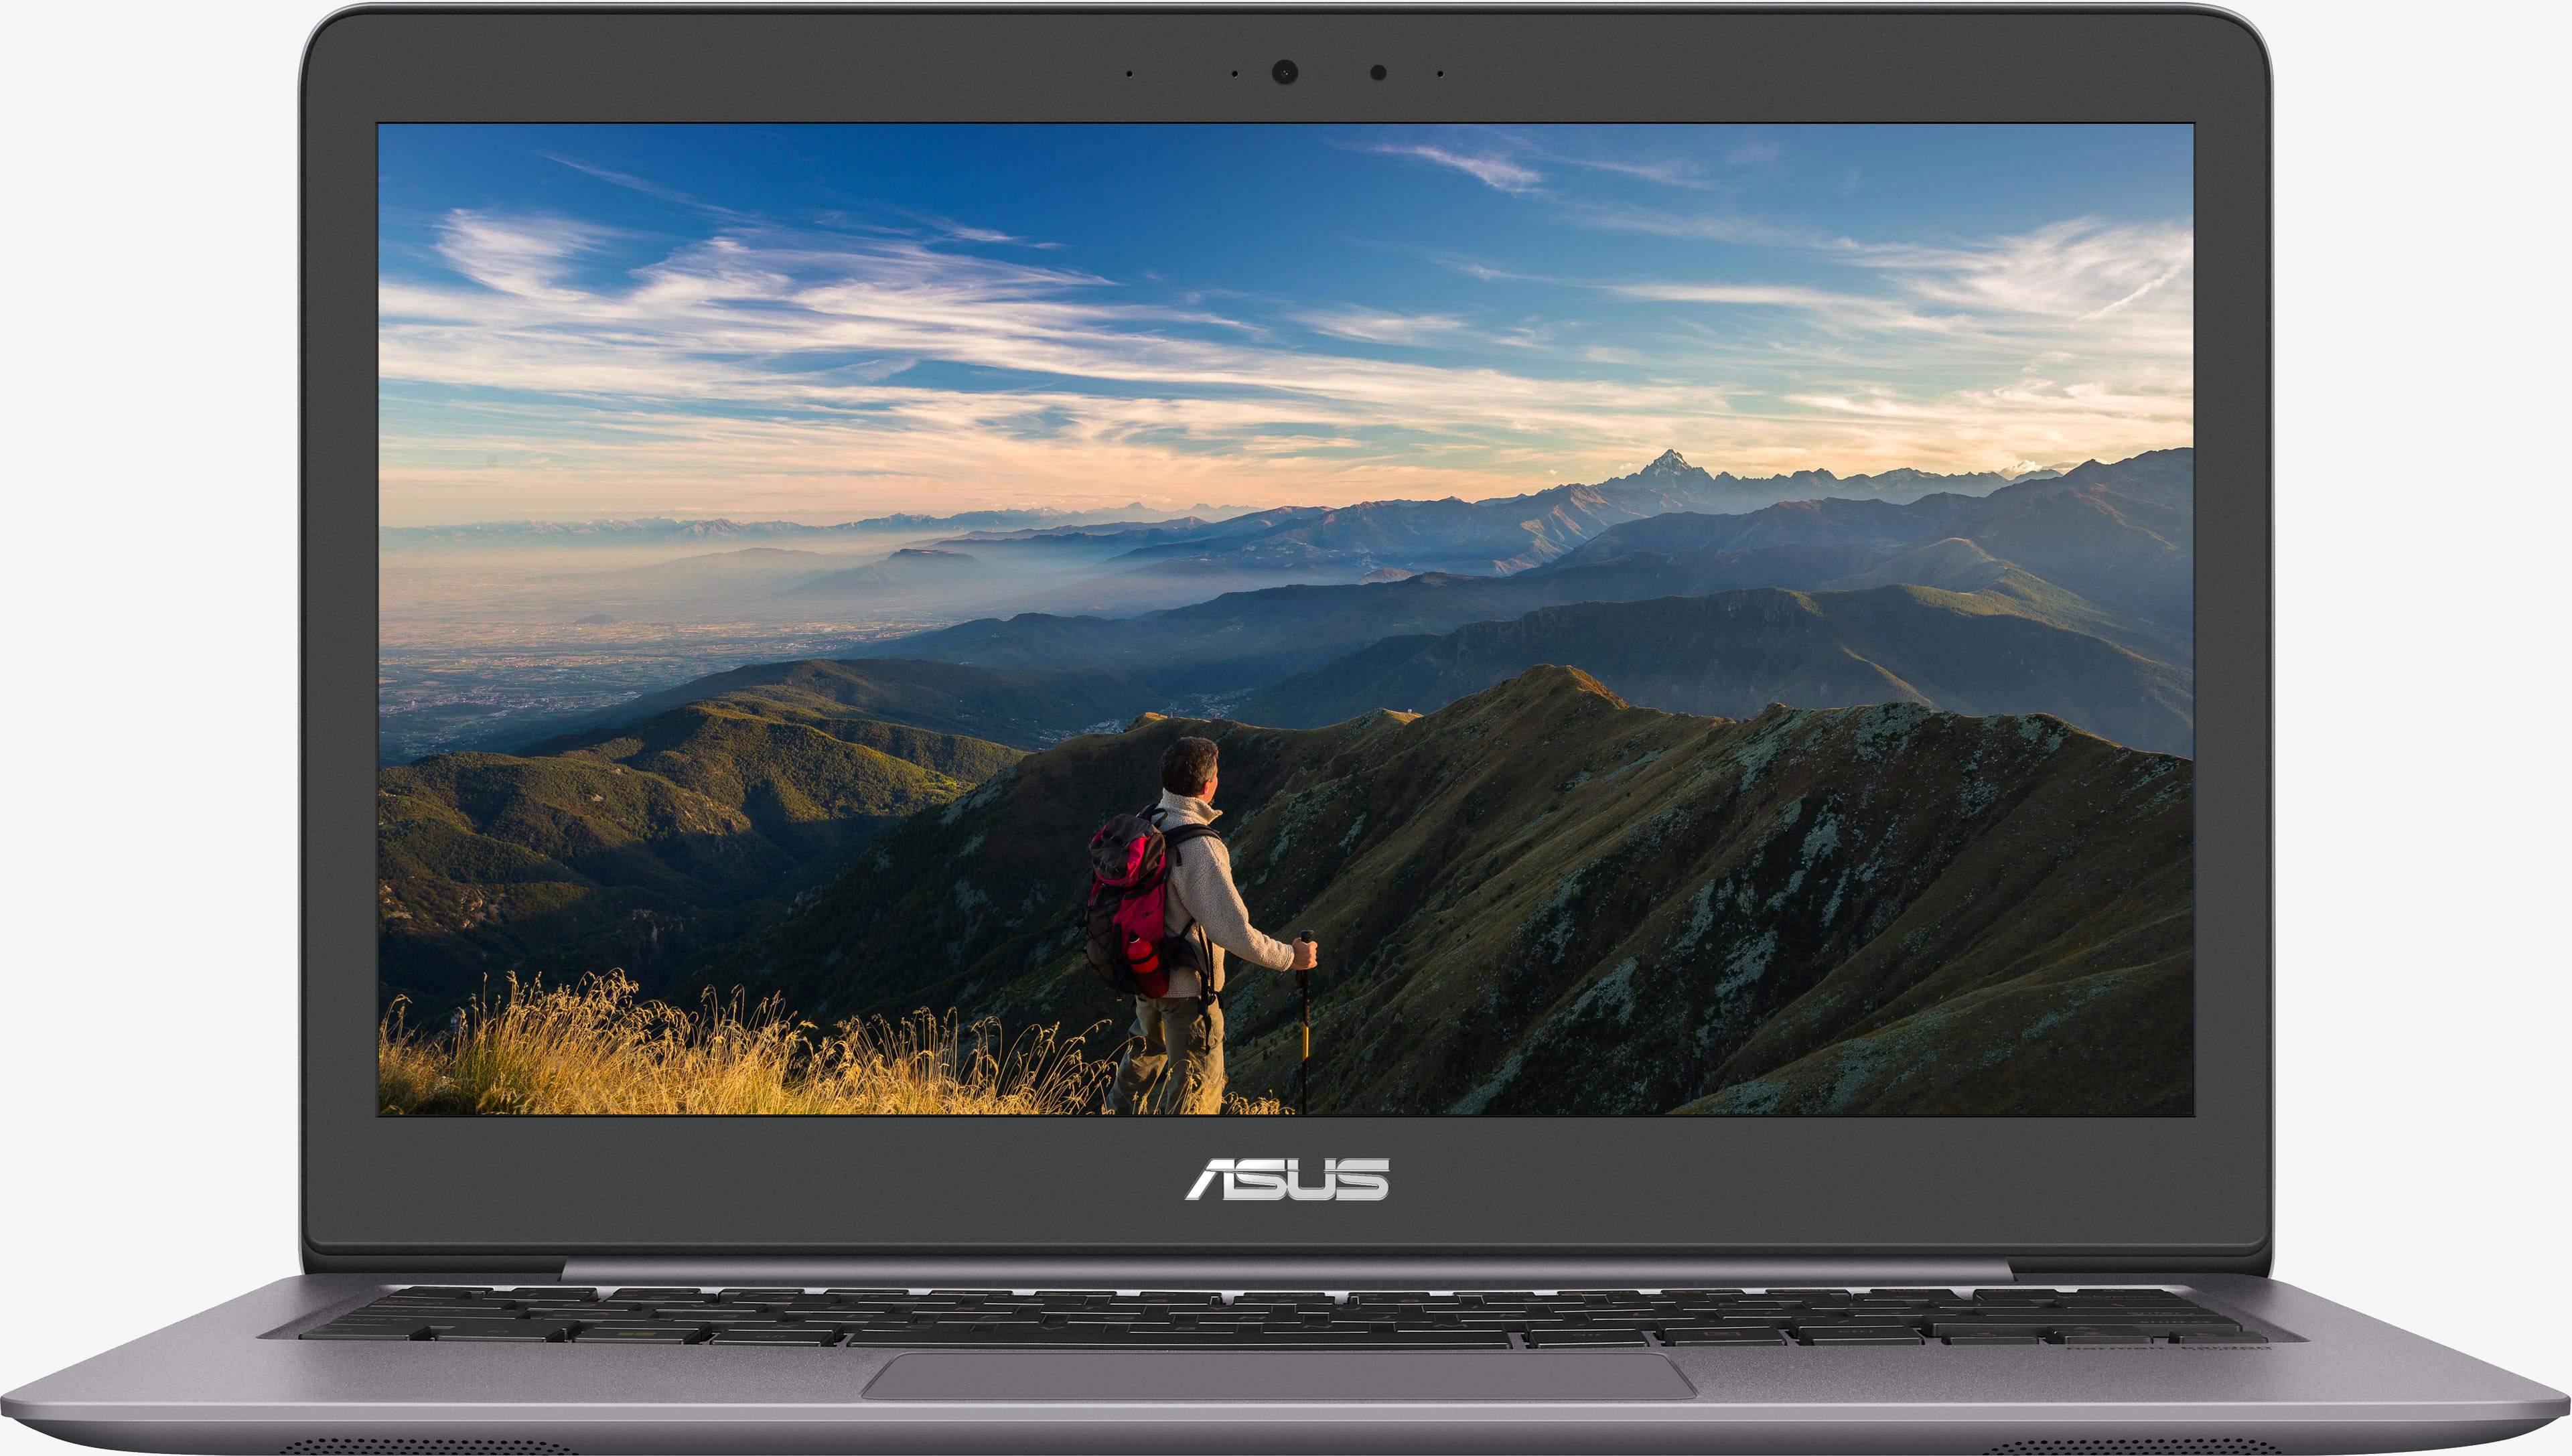 ASUS ZenBook U305CA Intel Bluetooth Drivers Windows